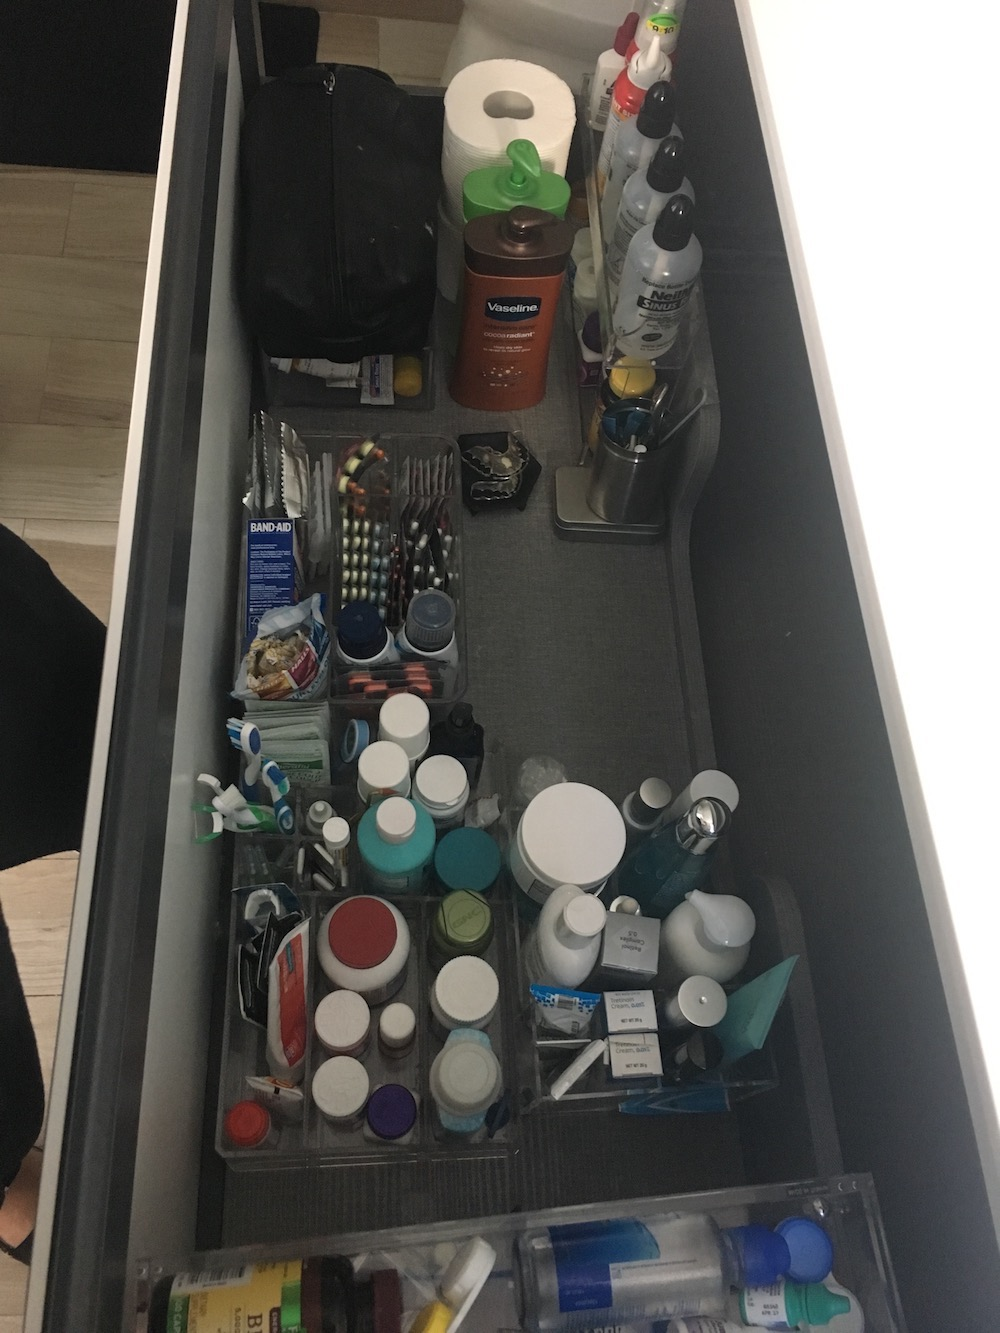 devivre_concierge_services_bathroom_organization_after2.jpeg